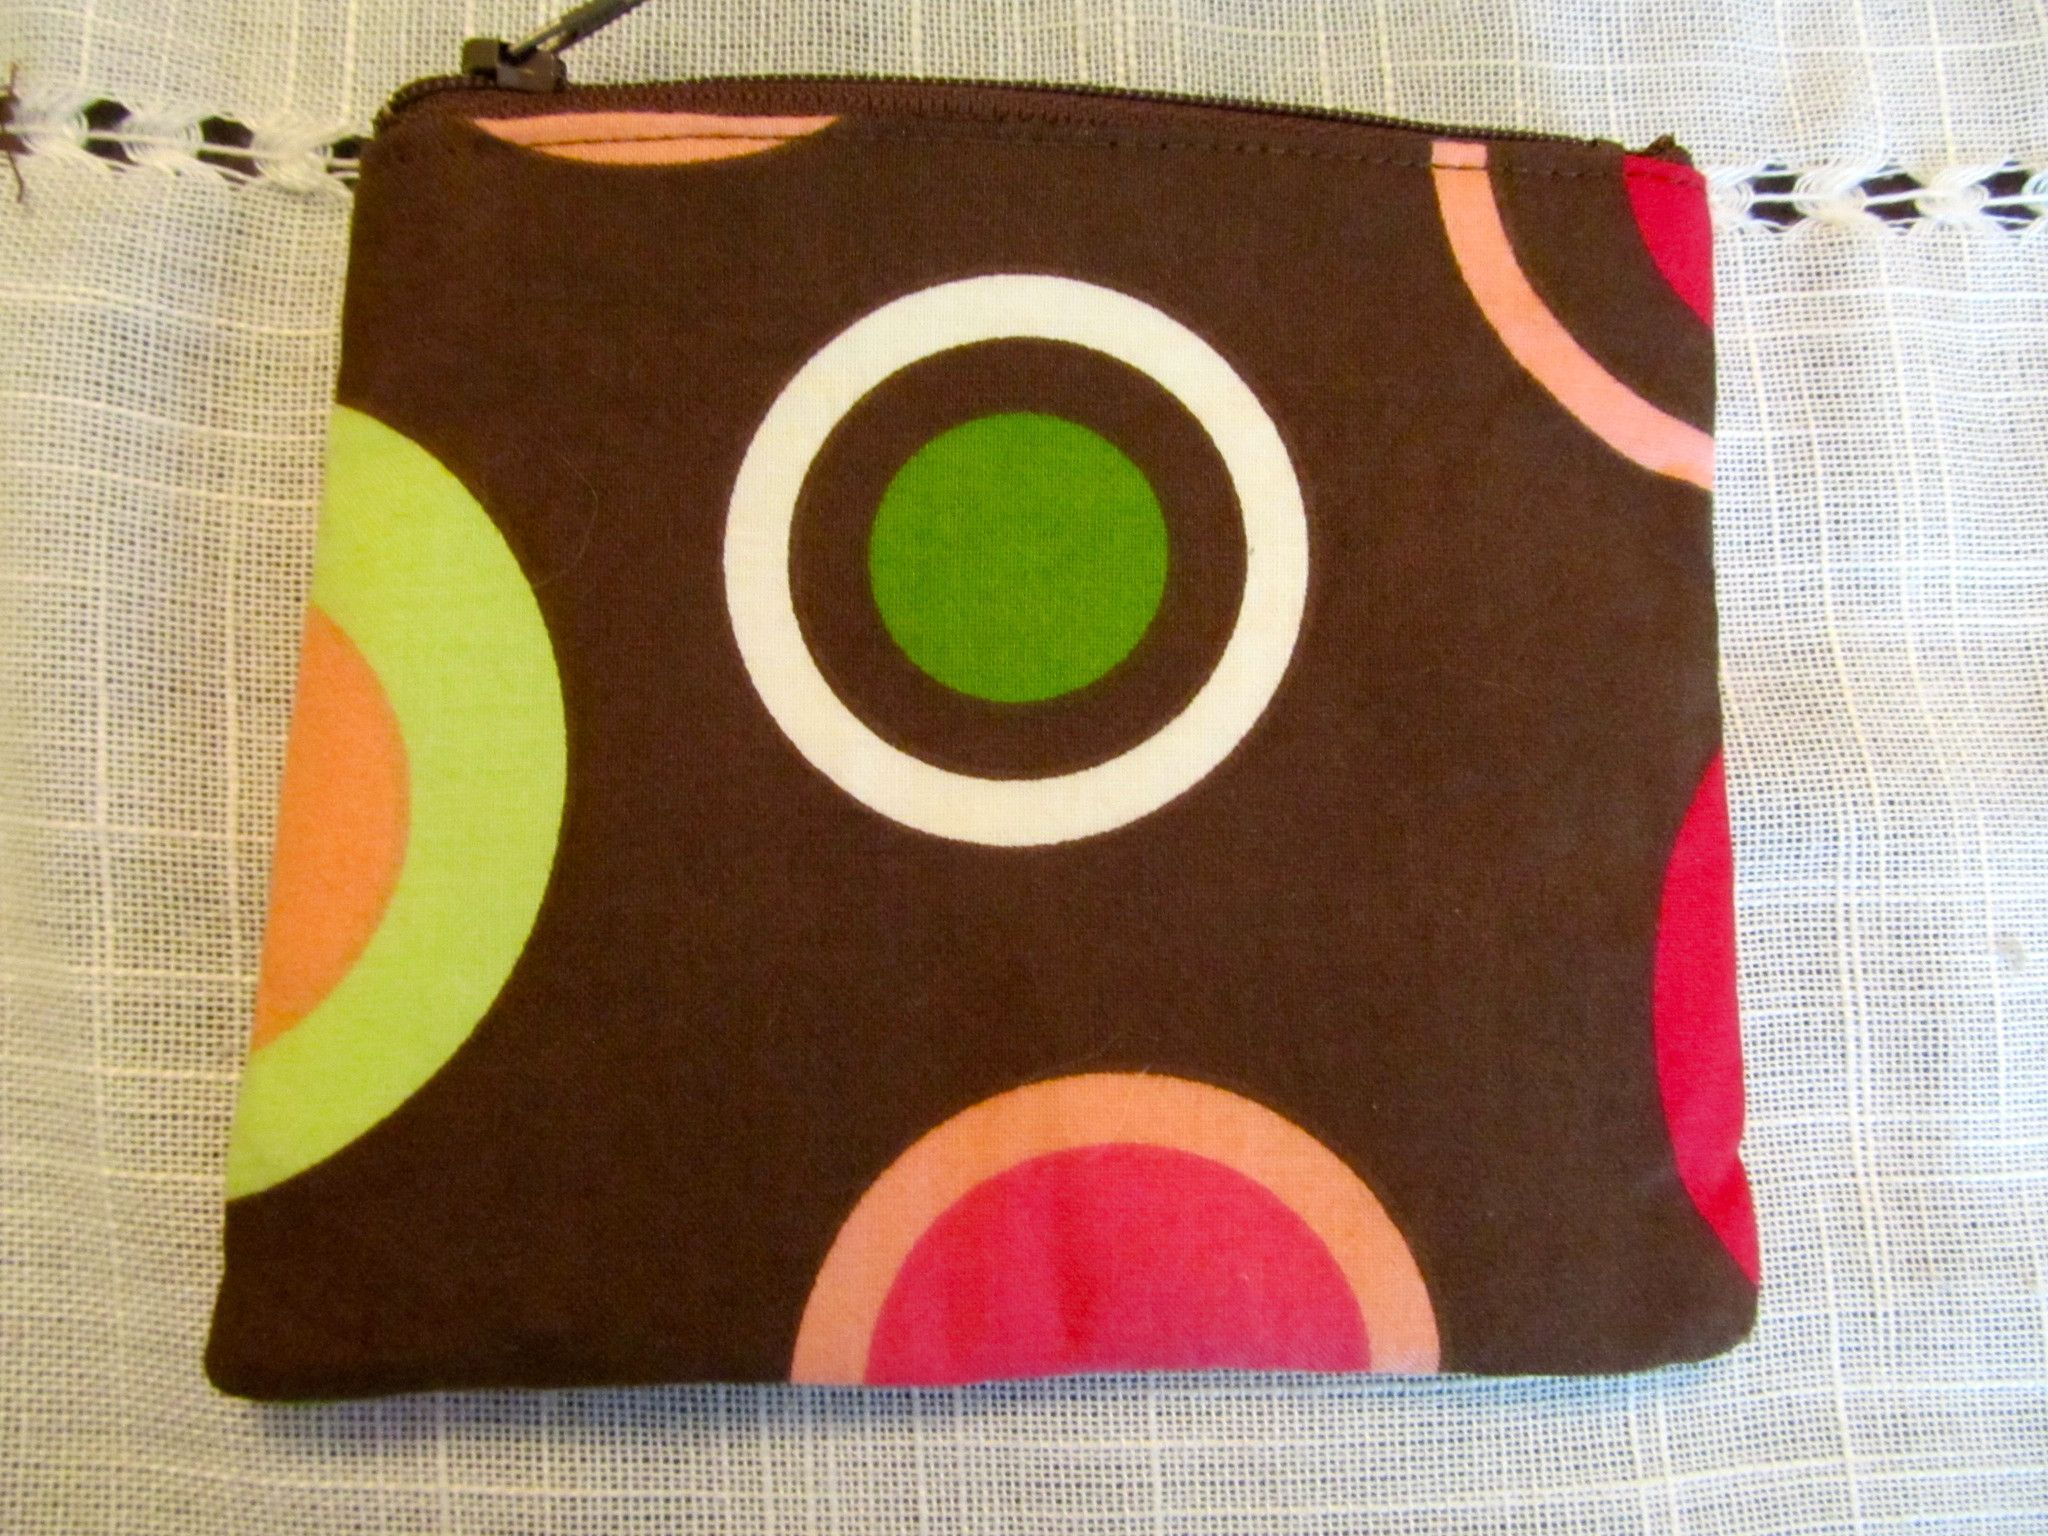 Abby #09 Chocolate Brown With Bright Circles, Accessory Bag, Wallet, Gift, Eco Friendly